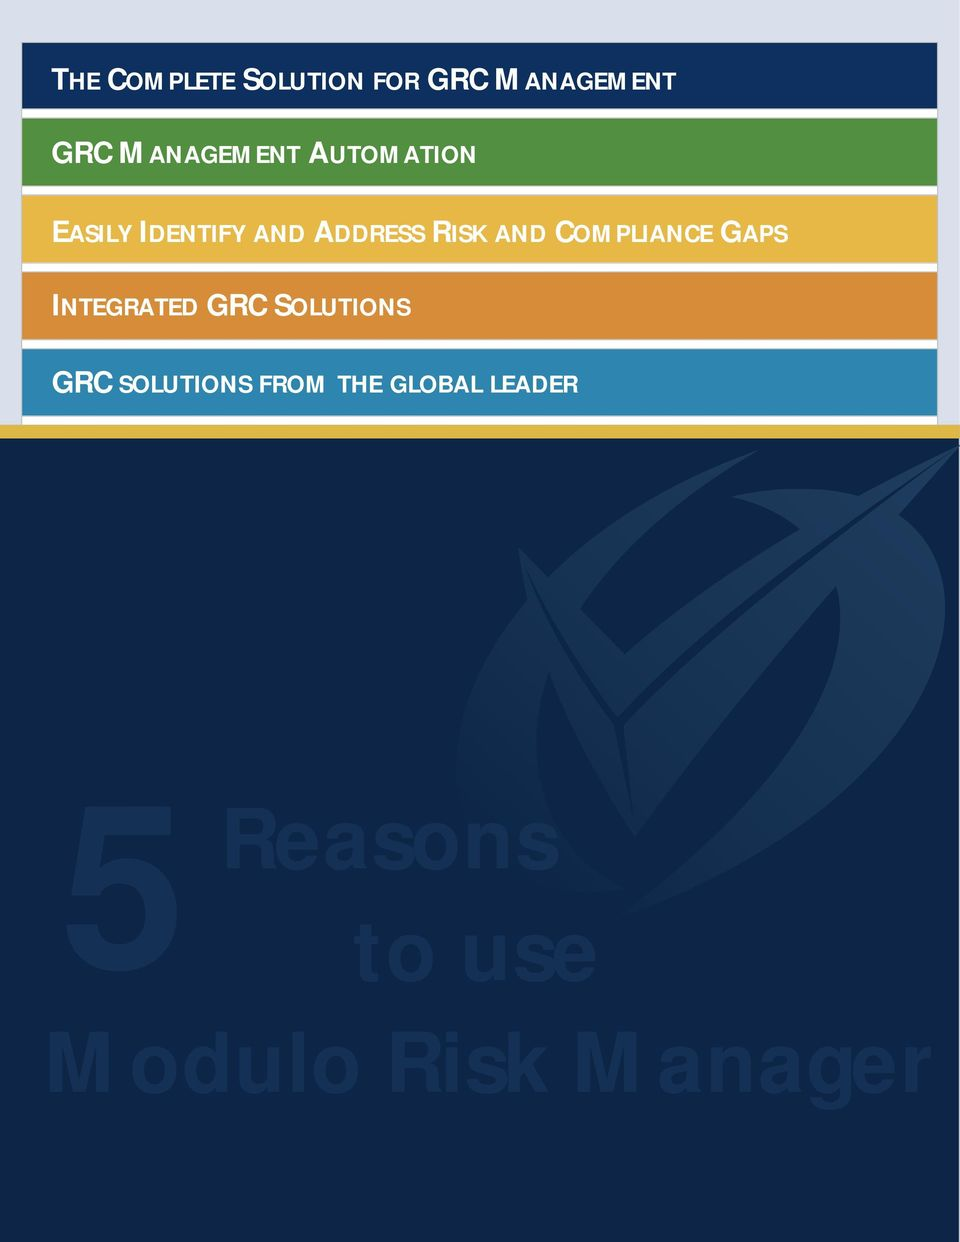 AND COMPLIANCE GAPS INTEGRATED GRC SOLUTIONS GRC